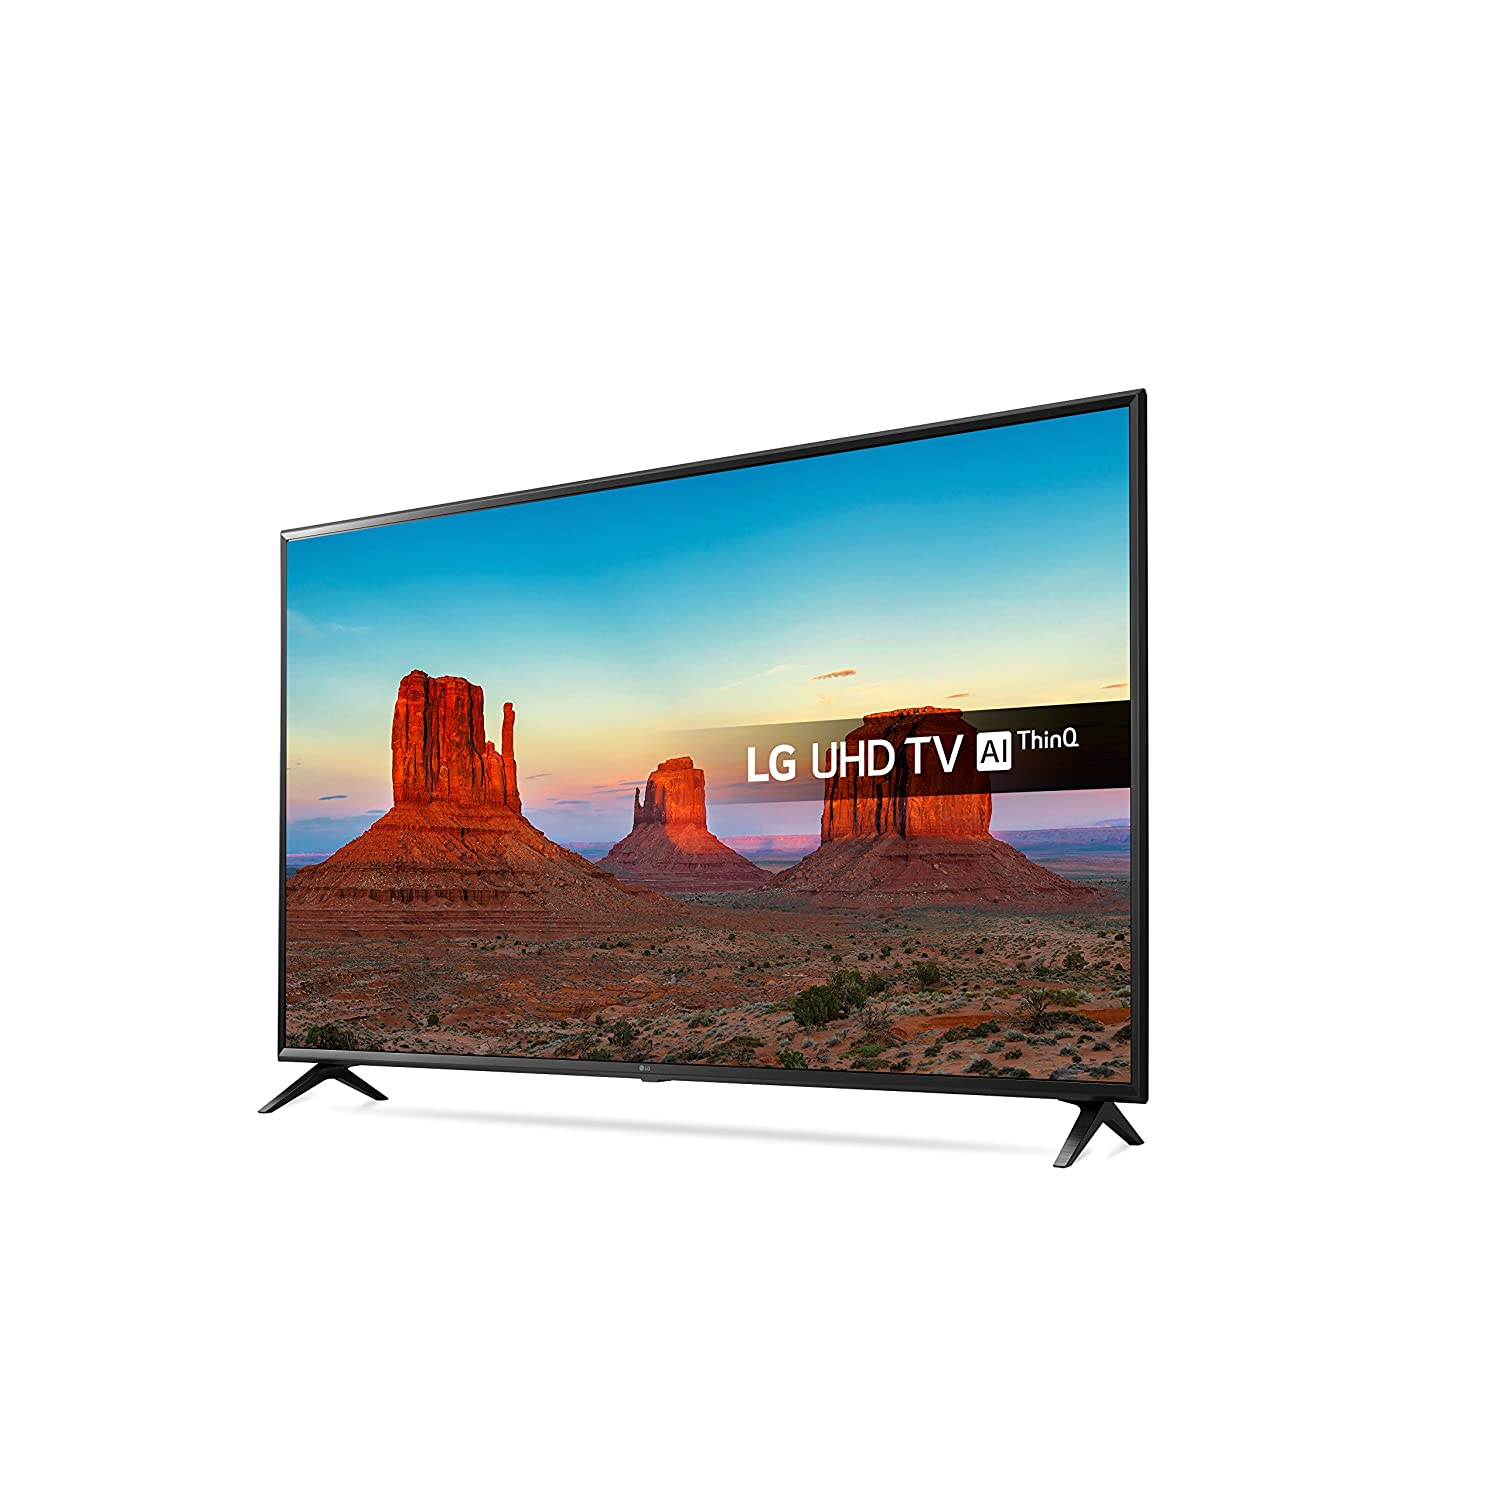 Lg 65uk6300plb 65 Inch Uhd 4k Hdr Smart Led Tv With Freeview Play Garbage Disposal Plumbing Also Slide In Range On Wiring Black 2018 Model